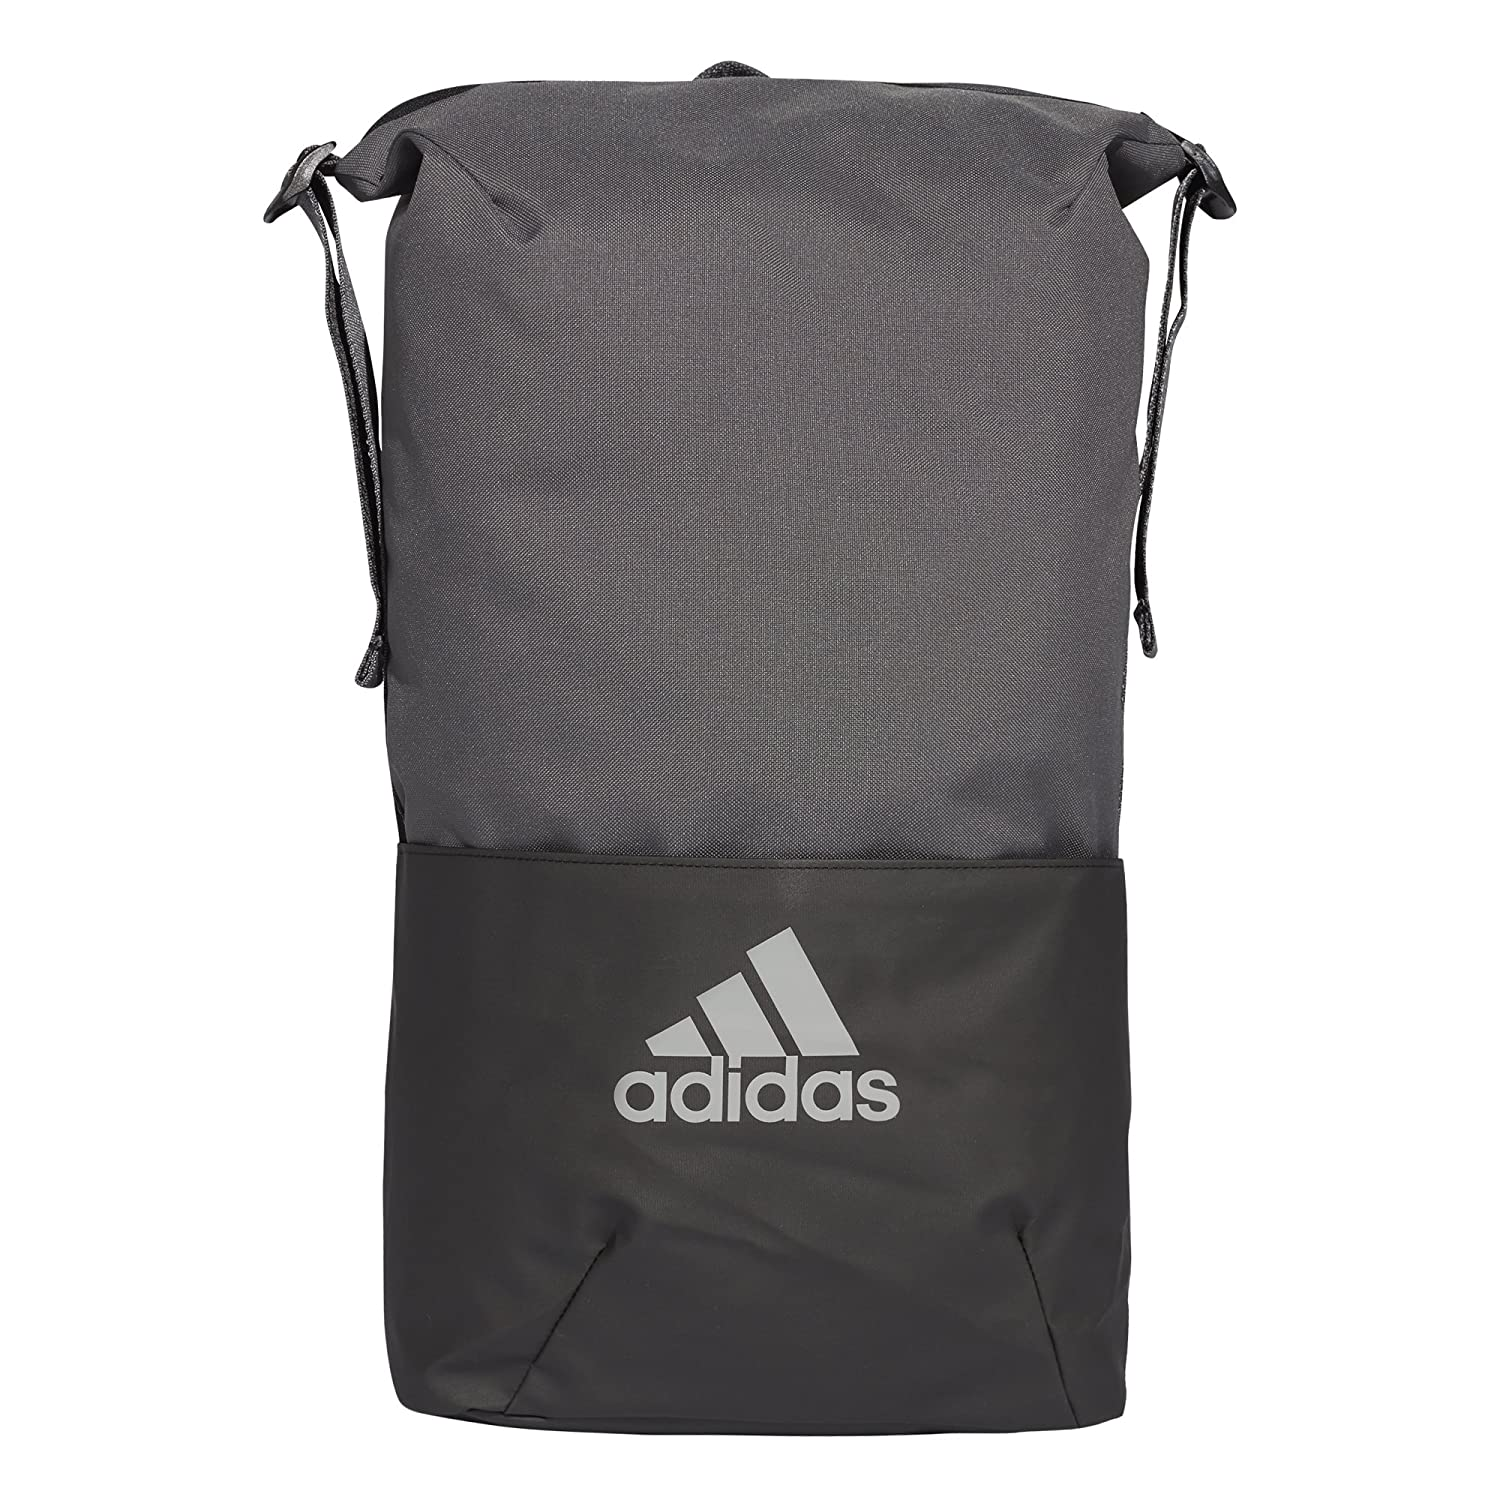 01ee7fa91a52 adidas Unisex Z.N.E. Core Graphic Backpack